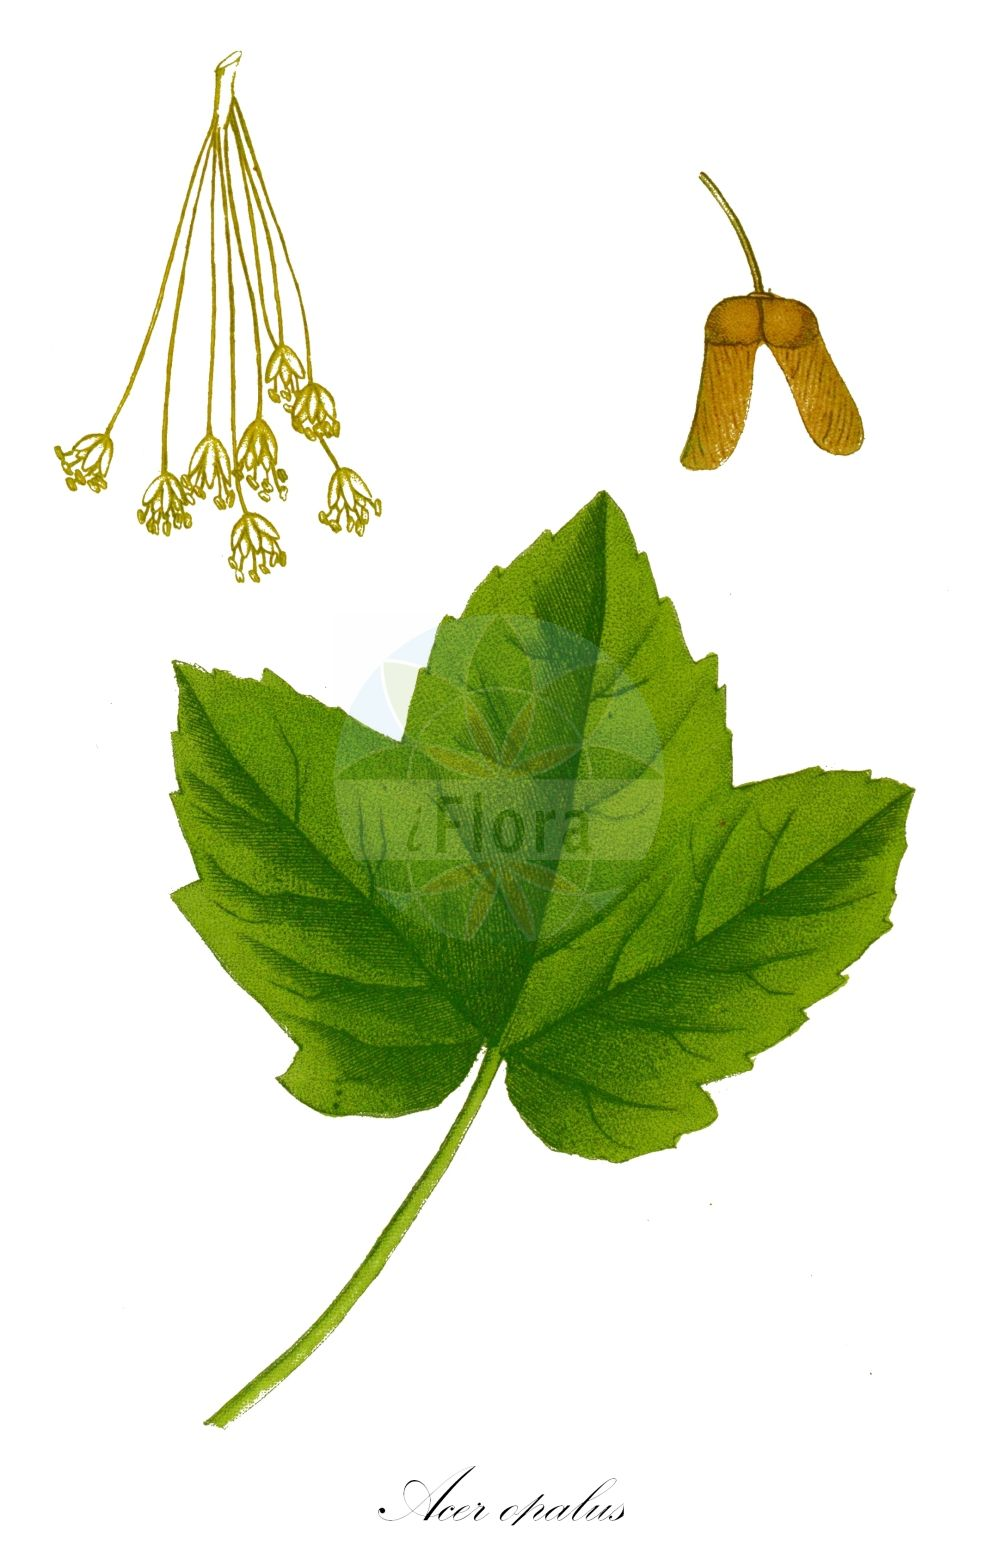 Historische Abbildung von Acer opalus (Fruehlings-Ahorn - Italian Maple). Das Bild zeigt Blatt, Bluete, Frucht und Same. ---- Historical Drawing of Acer opalus (Fruehlings-Ahorn - Italian Maple).The image is showing leaf, flower, fruit and seed. (Acer opalus,Fruehlings-Ahorn,Italian Maple,Acer hispanicum,Acer italum,Acer opulifolium,Acer rotundifolium,Schneeball-Ahorn,Opalus Maple,Acer,Ahorn,Maple,Sapindaceae,Seifenbaumgewaechse,Soapberry family,Blatt,Bluete,Frucht,Same,leaf,flower,fruit,seed,de Saint-Hilaire (1824a))